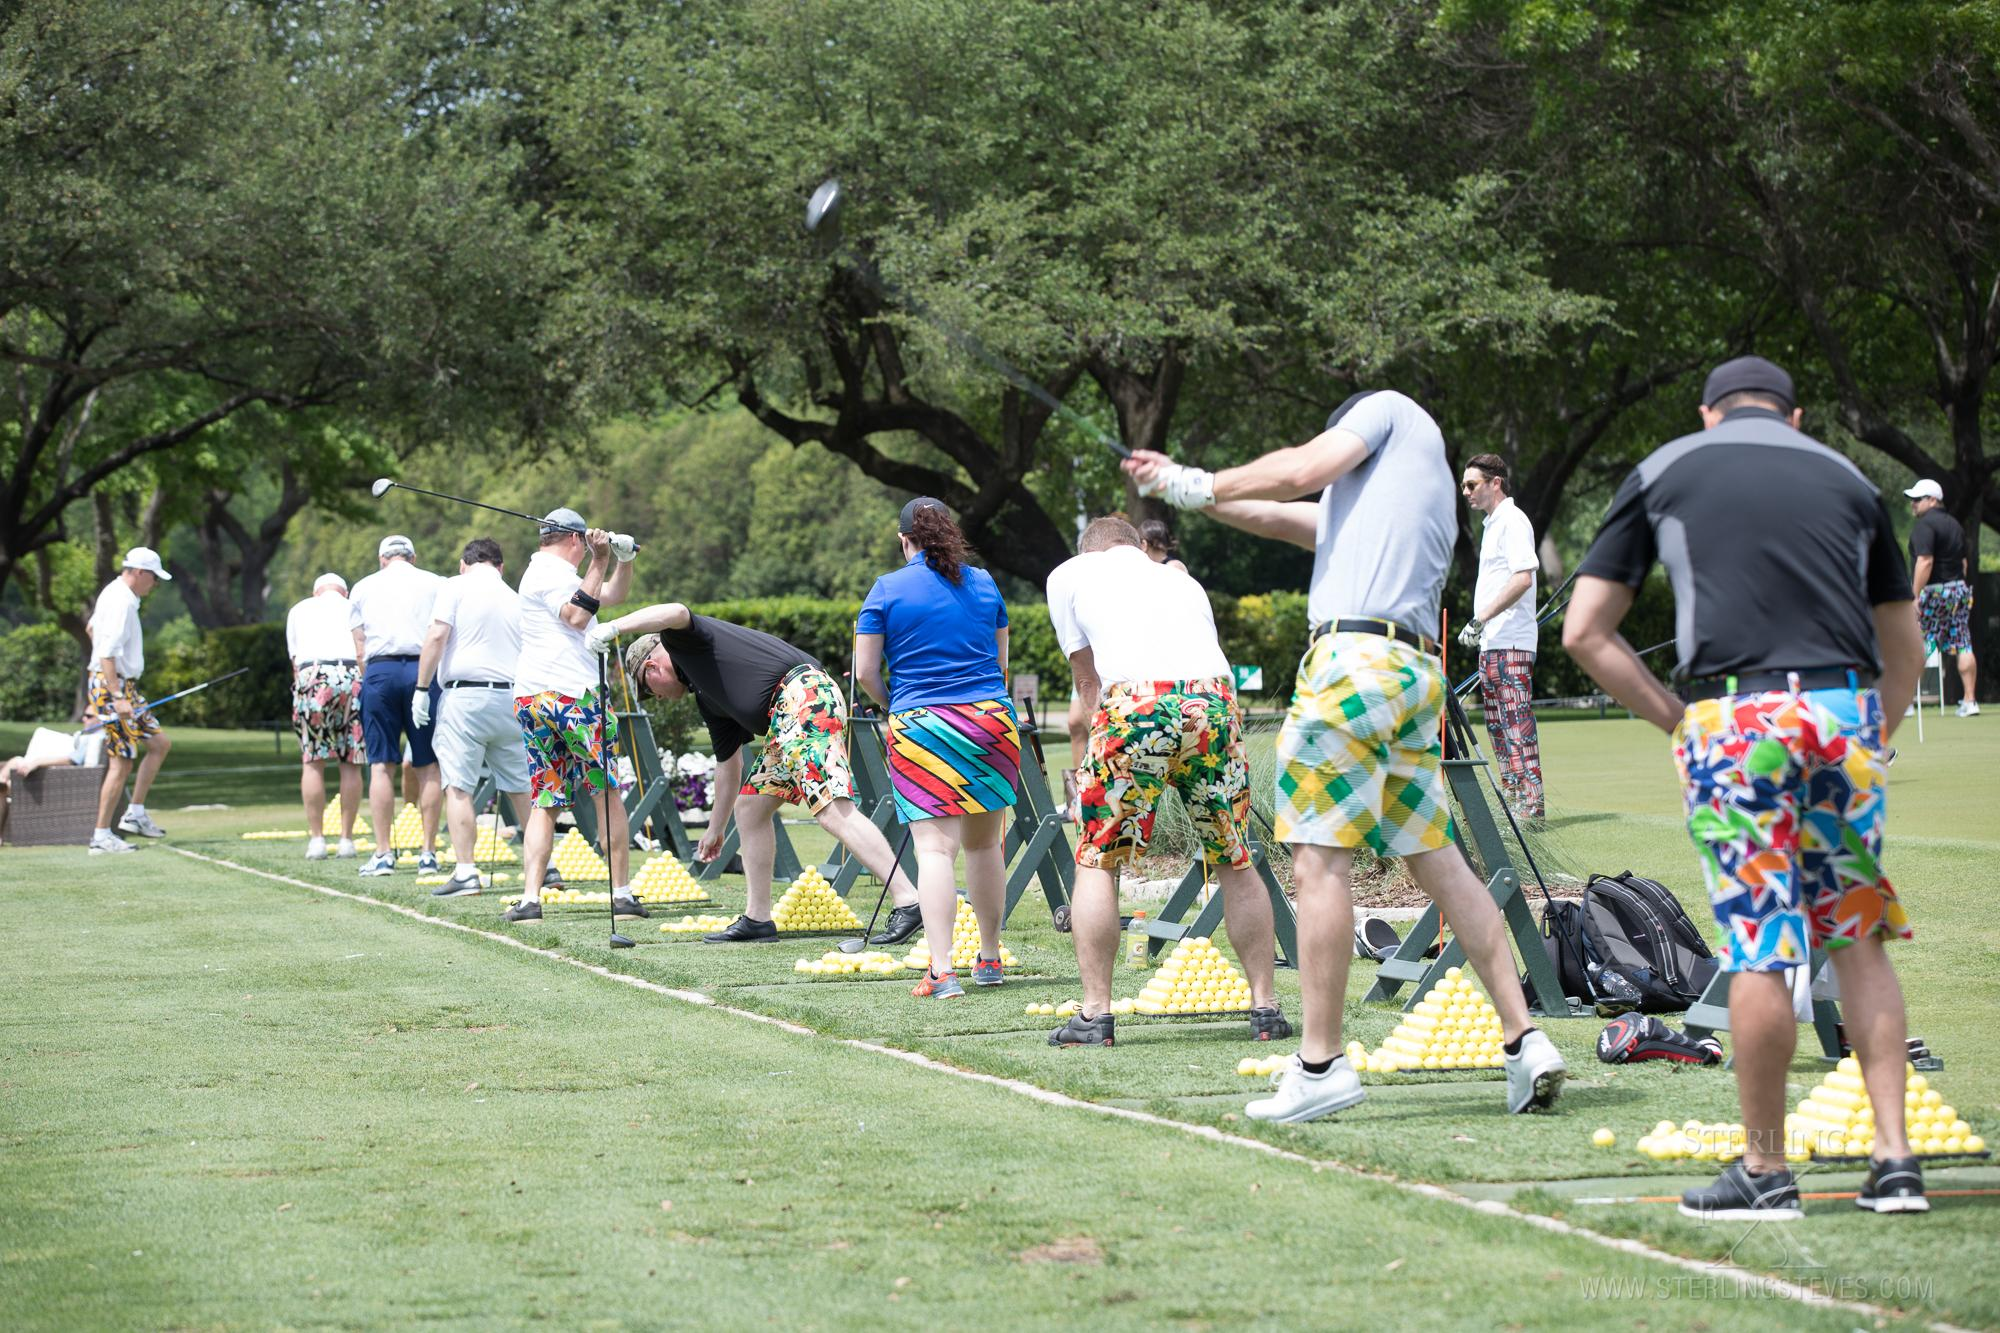 2018 Rotary Club of Fort Worth Crazy Pants Open Golf Tournament